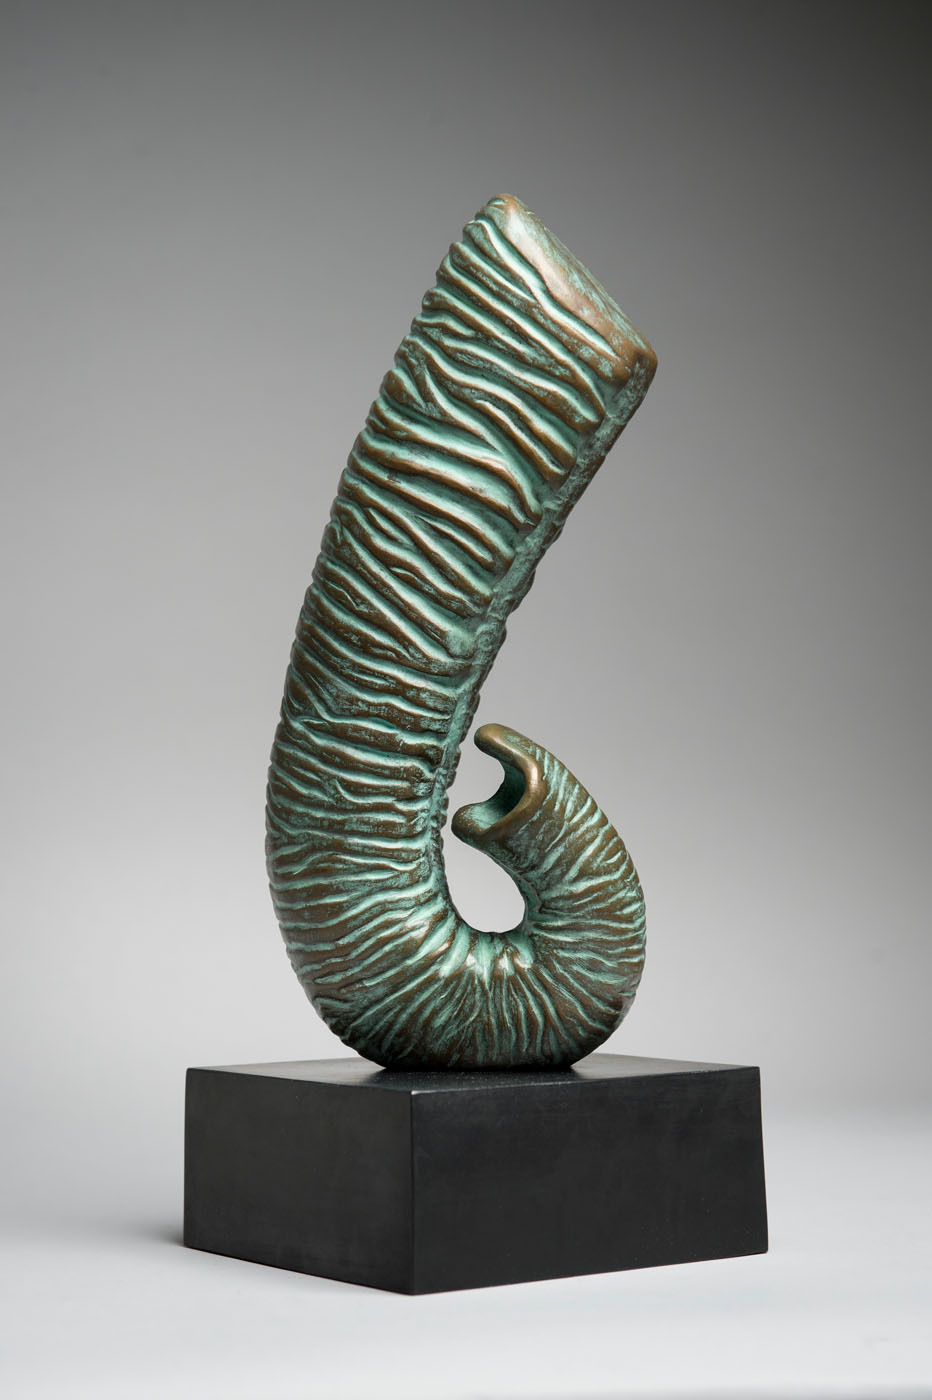 Bronze sculpture of an Elephant's Trunk by artist Anthony Smith